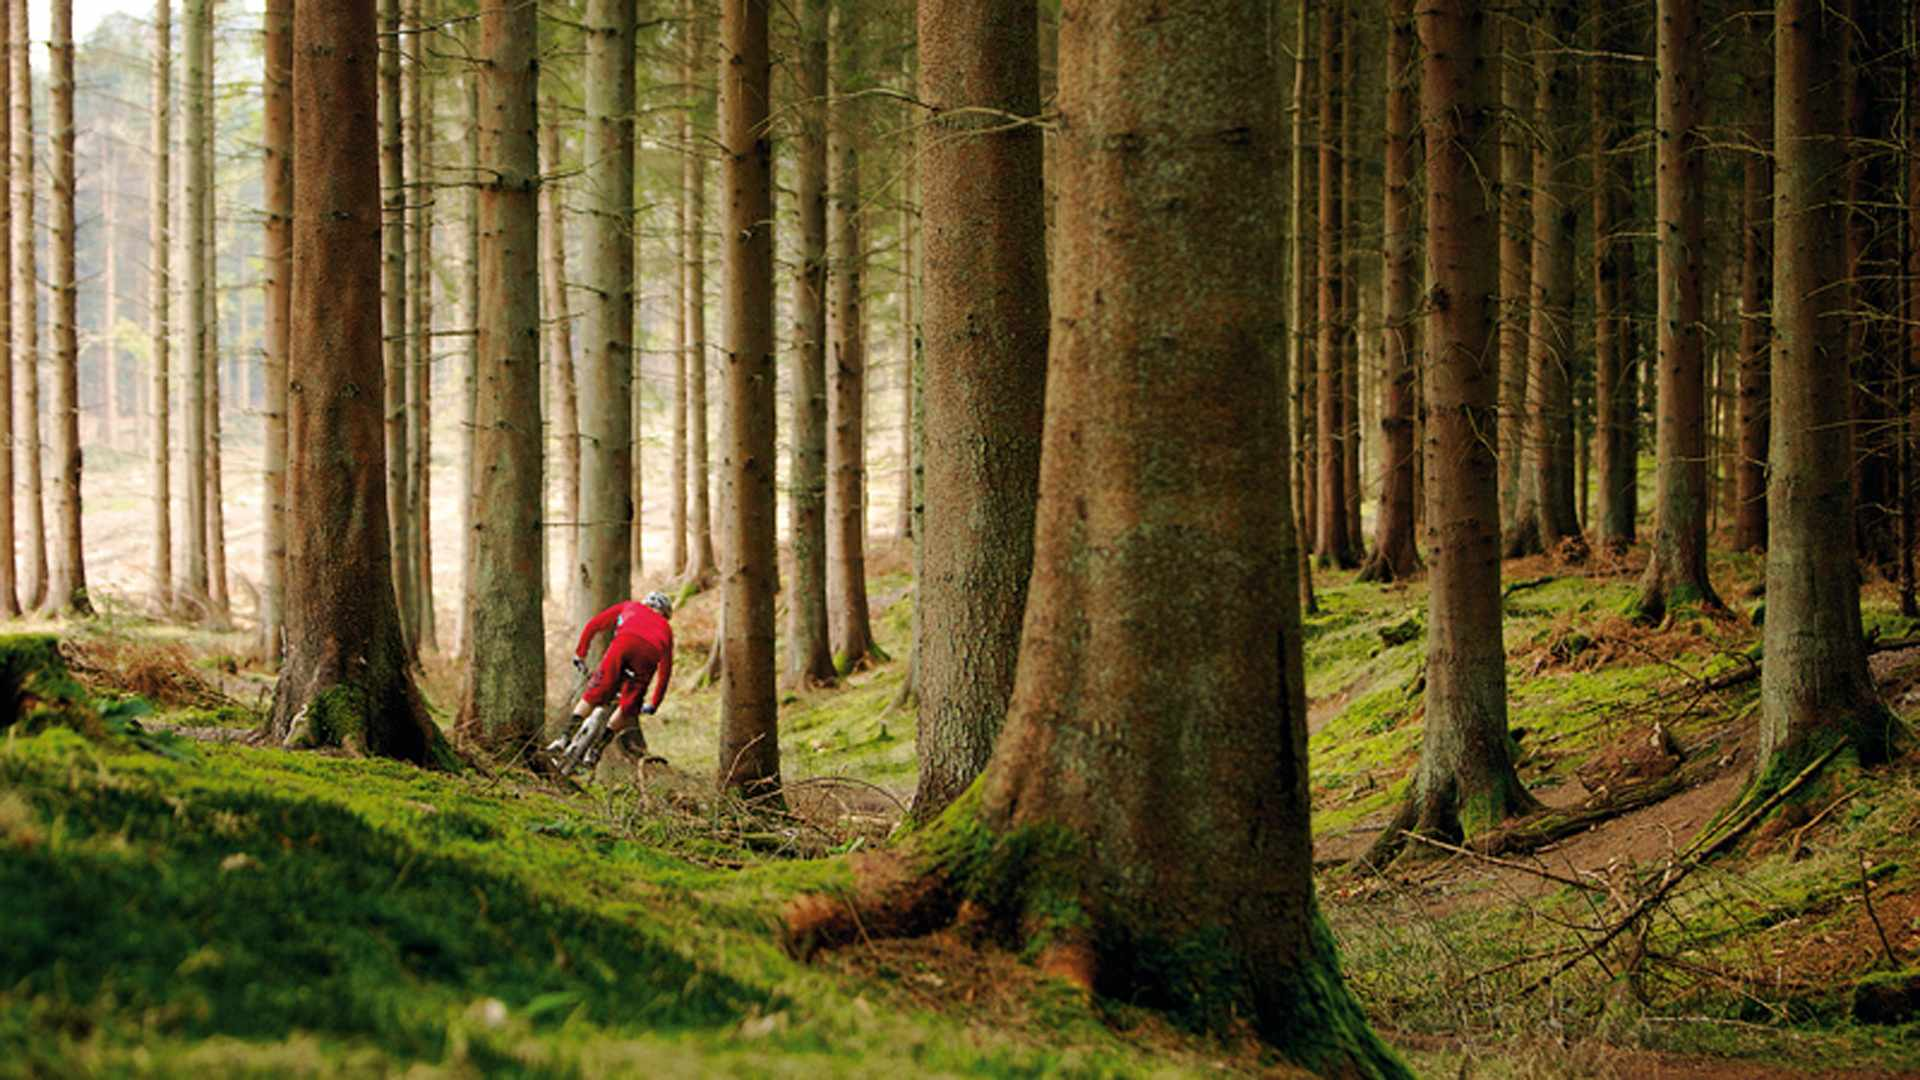 The Forest of Dean is the ideal place to get to grips with a potential new purchase